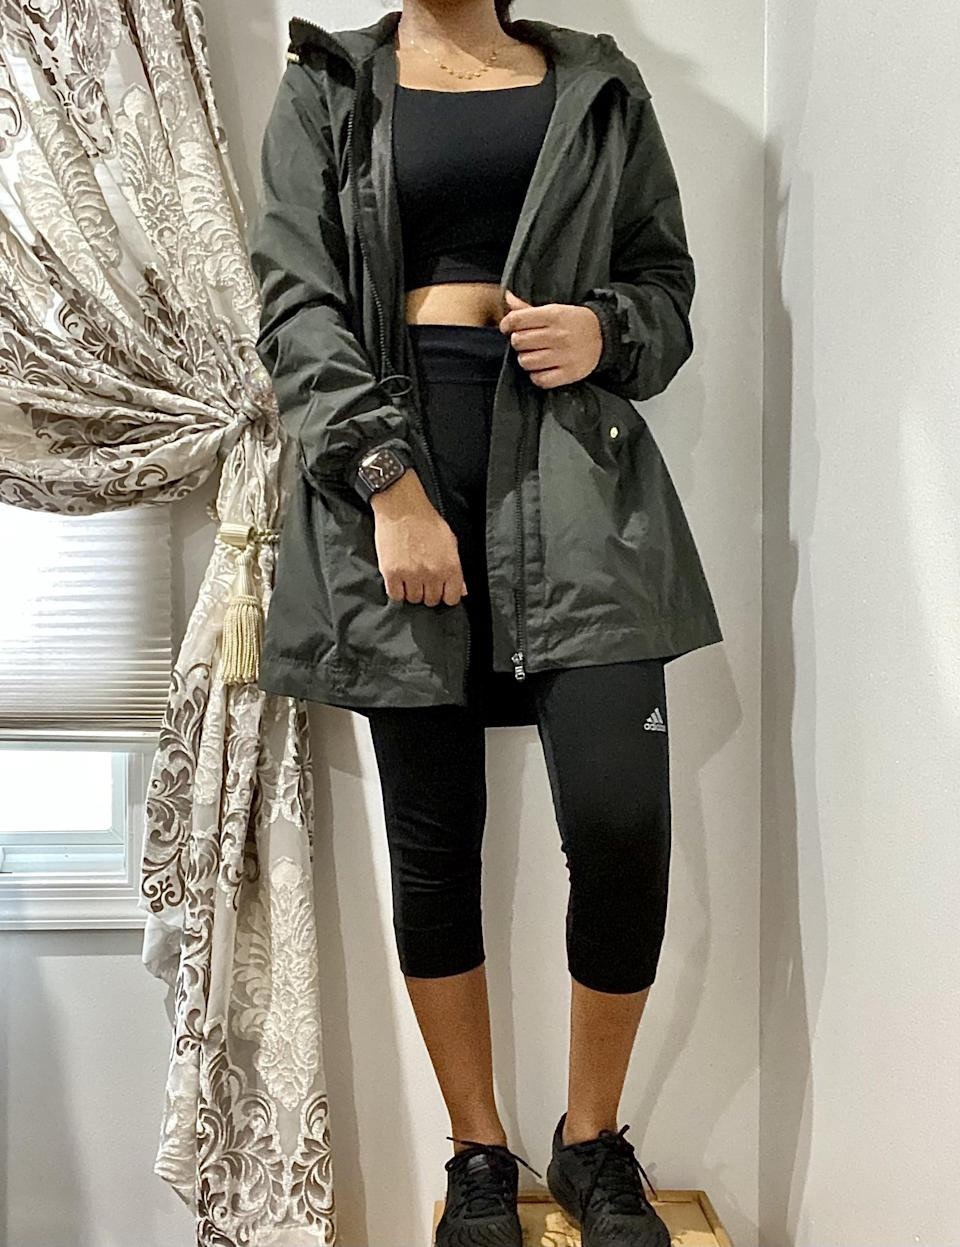 """<p><strong>The item:</strong> <span>Old Navy Go-H20 Water-Resistant Hooded Anorak for Women</span> (Sold Out)</p> <p><strong>What our editor said:</strong> """"I'm a petite person, and outerwear looks significantly oversized on me but not in a cute <a class=""""link rapid-noclick-resp"""" href=""""https://www.popsugar.com/Ariana-Grande"""" rel=""""nofollow noopener"""" target=""""_blank"""" data-ylk=""""slk:Ariana Grande"""">Ariana Grande</a> way, more like in an overwhelming way, like I'm being engulfed in a sea of jackets. What I love about this jacket is that it has an adjustable drawcord at the cinch of the waist. It gives the jacket some shape and makes me look like I have proper curves and not just wearing a poncho from a Niagara Falls tour. I also love that the cuffs of the sleeves are cinched in with elastic bands."""" - Anvita Reddy, editorial coordinator, Shop </p> <p>If you want to read more, here is the <a href=""""http://www.popsugar.com/fashion/old-navy-weather-proof-jacket-review-47963234"""" class=""""link rapid-noclick-resp"""" rel=""""nofollow noopener"""" target=""""_blank"""" data-ylk=""""slk:complete review"""">complete review</a>.</p>"""